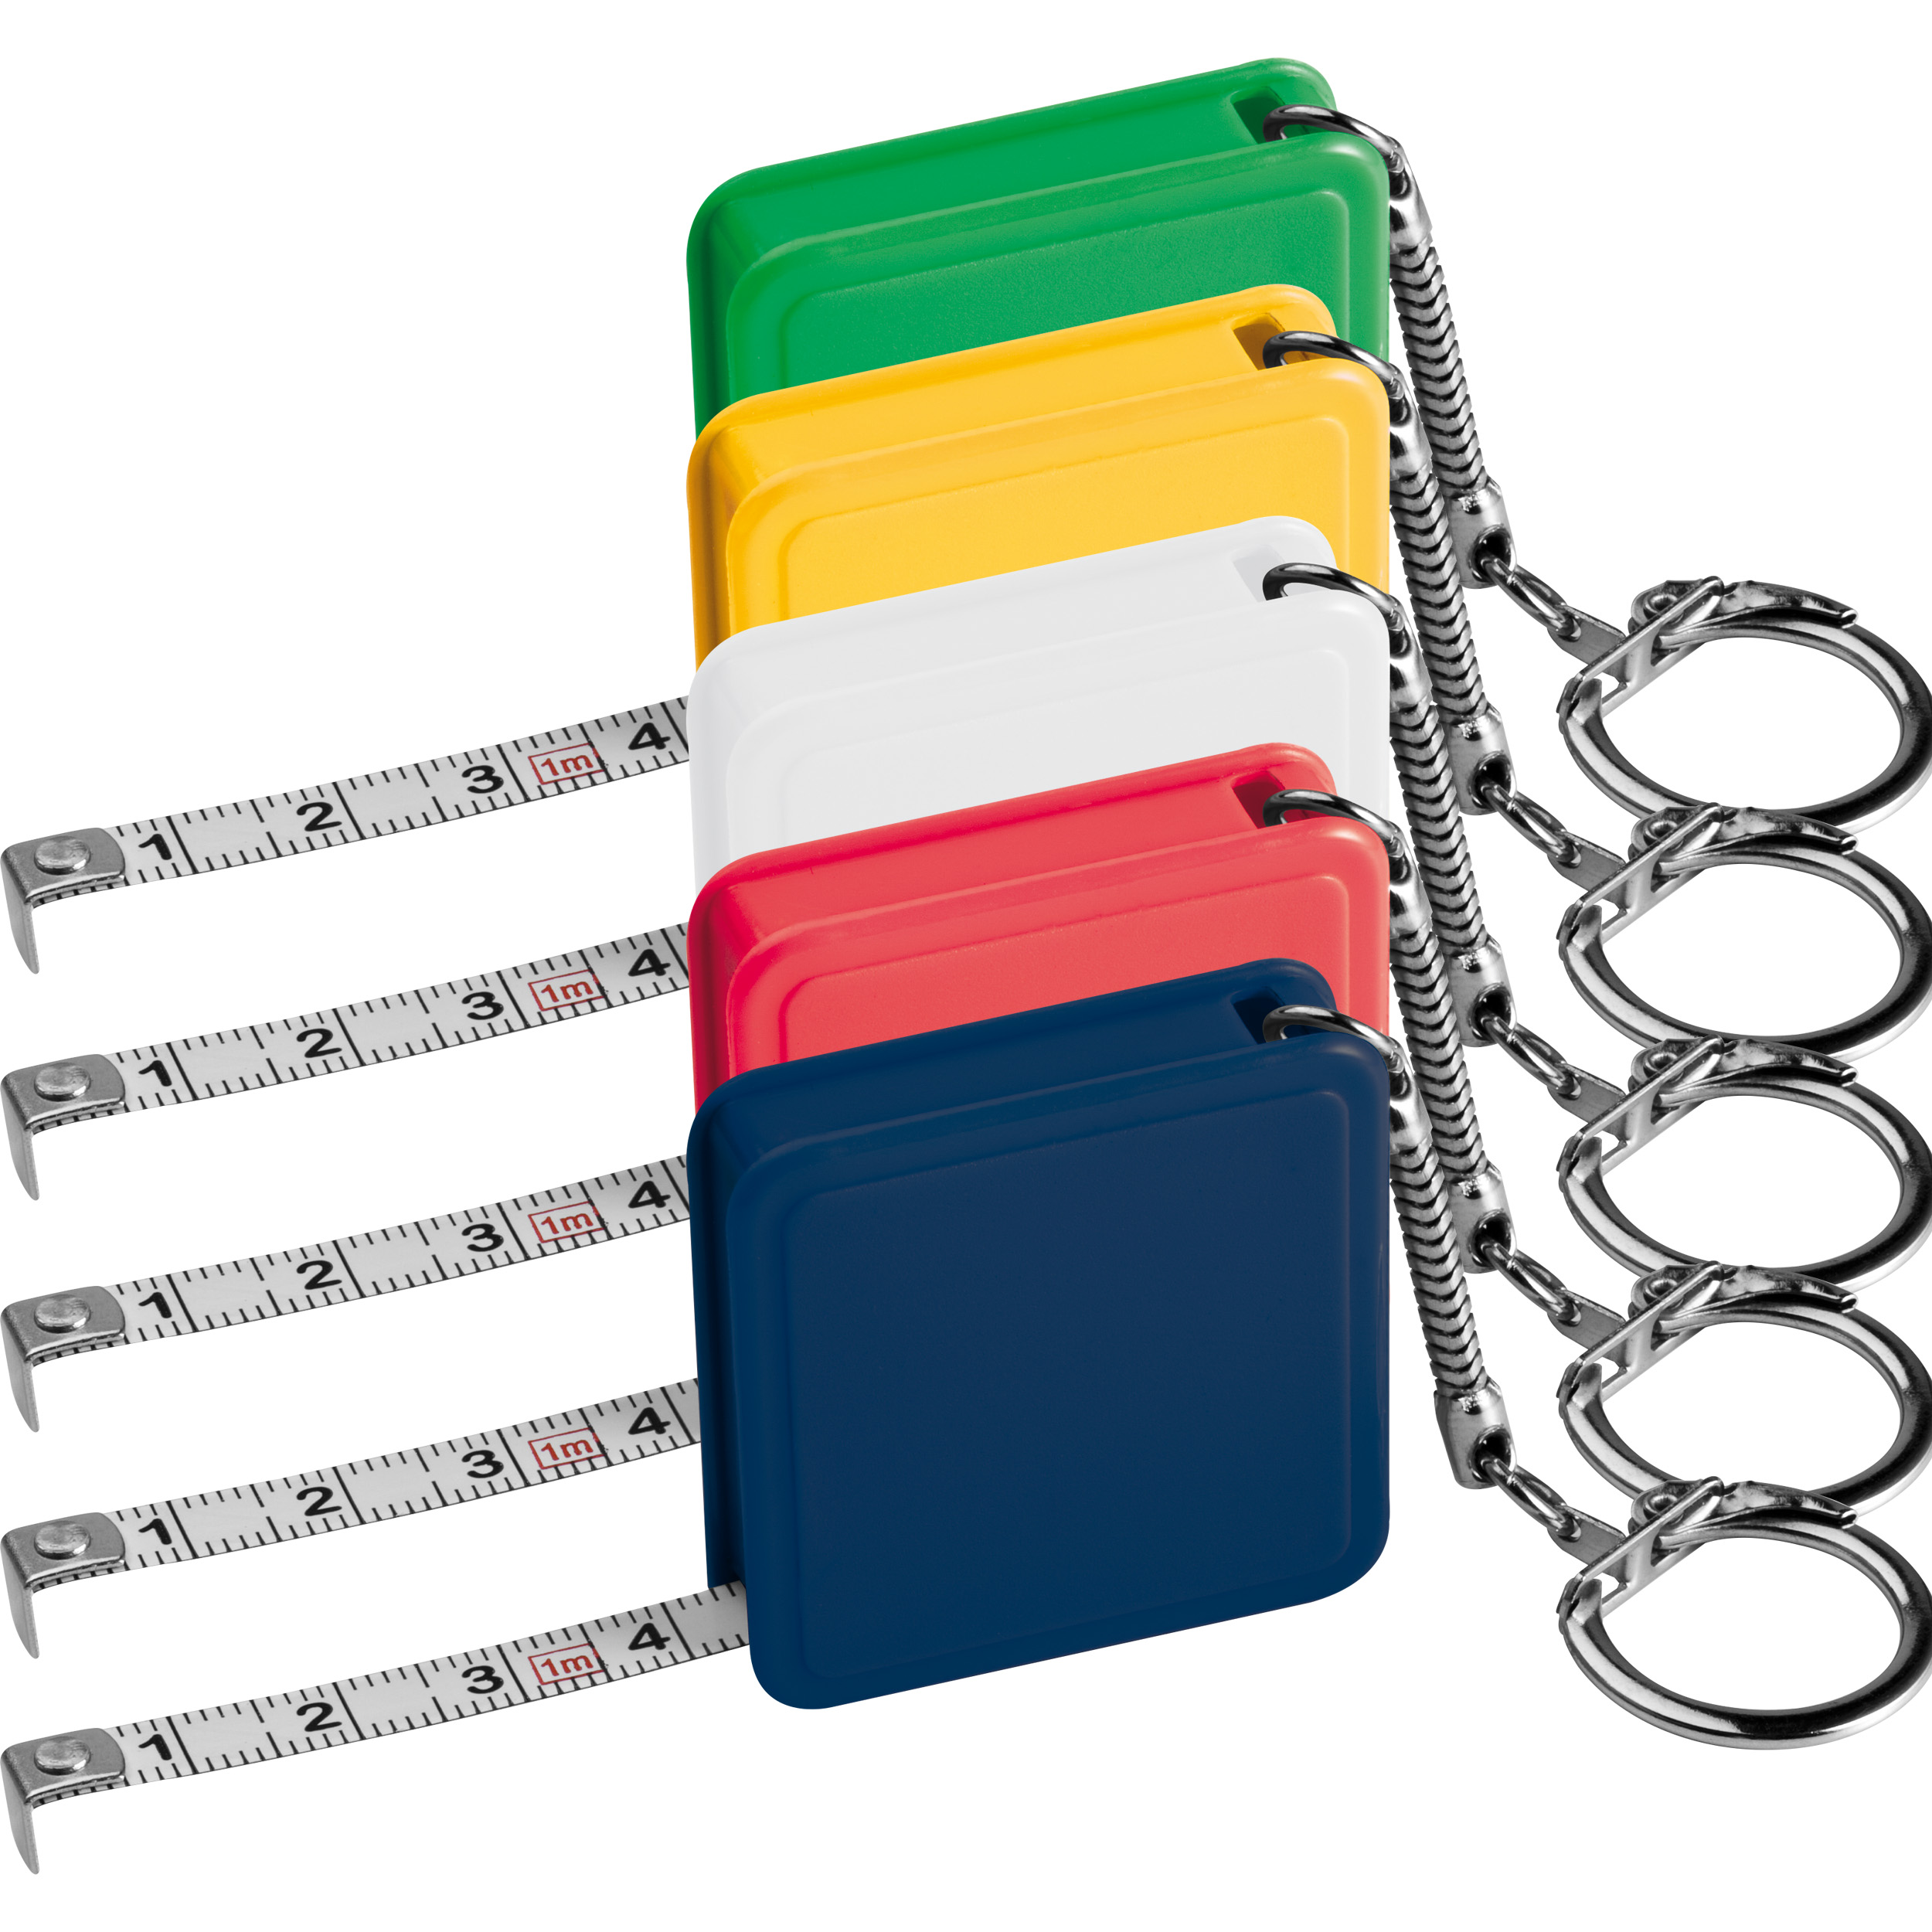 1 meter steel measuring tape